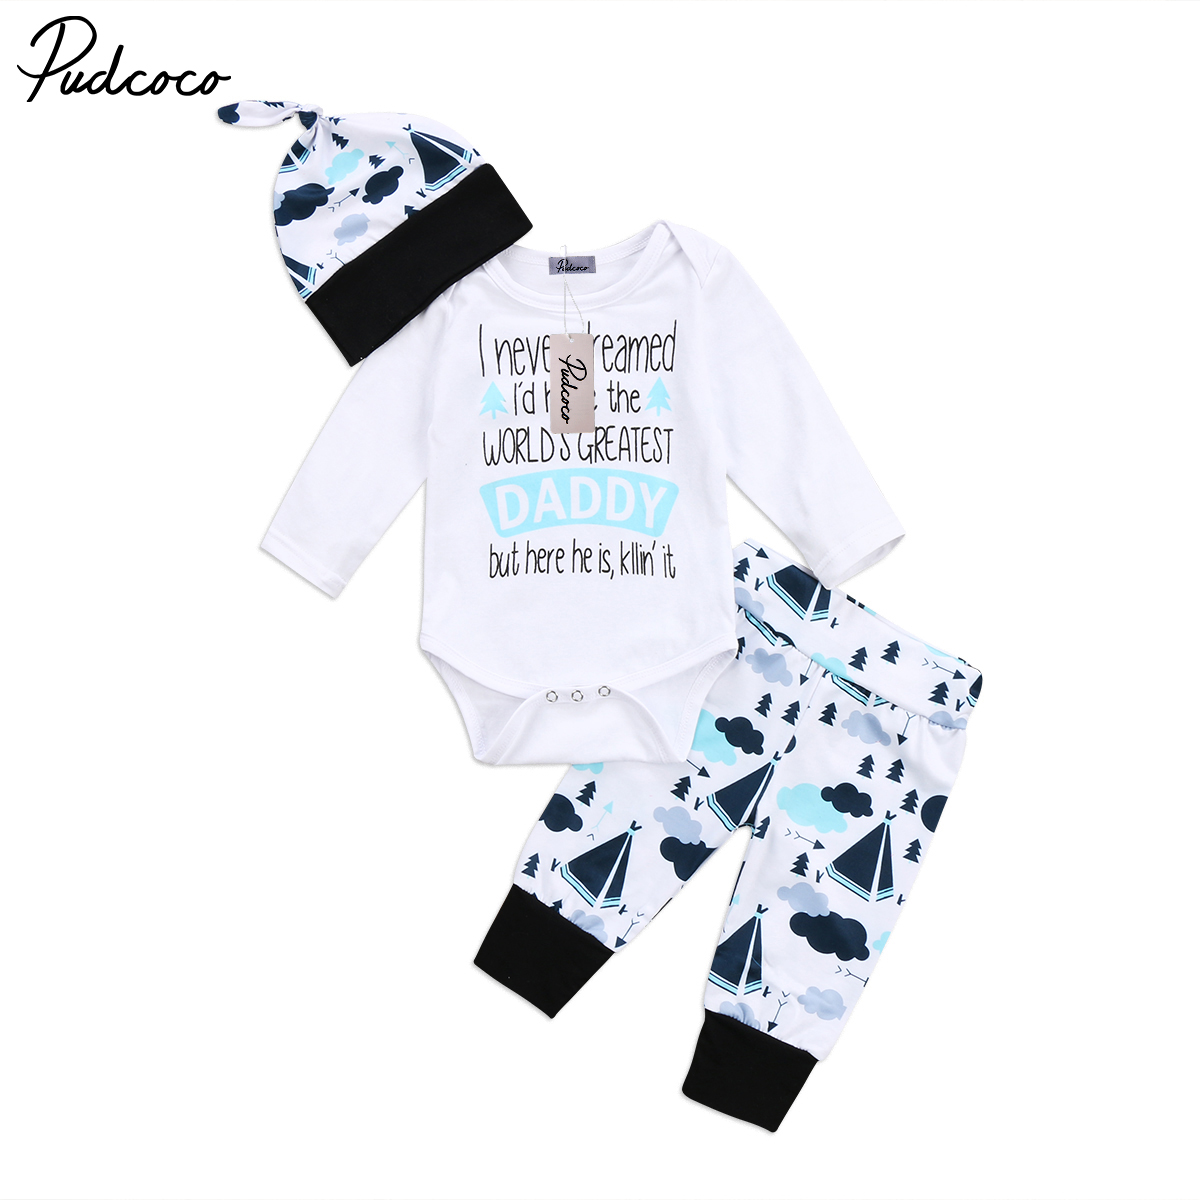 Toddler Infant Baby Boy Girl Greatest Daddy Clothing Sets Cotton Romper Tops Pants Leggings Outfits Set cotton letter tops romper pants newborn infant baby boy girl 2017 new arrival fashion outfits clothes sunsuit age 0 3y